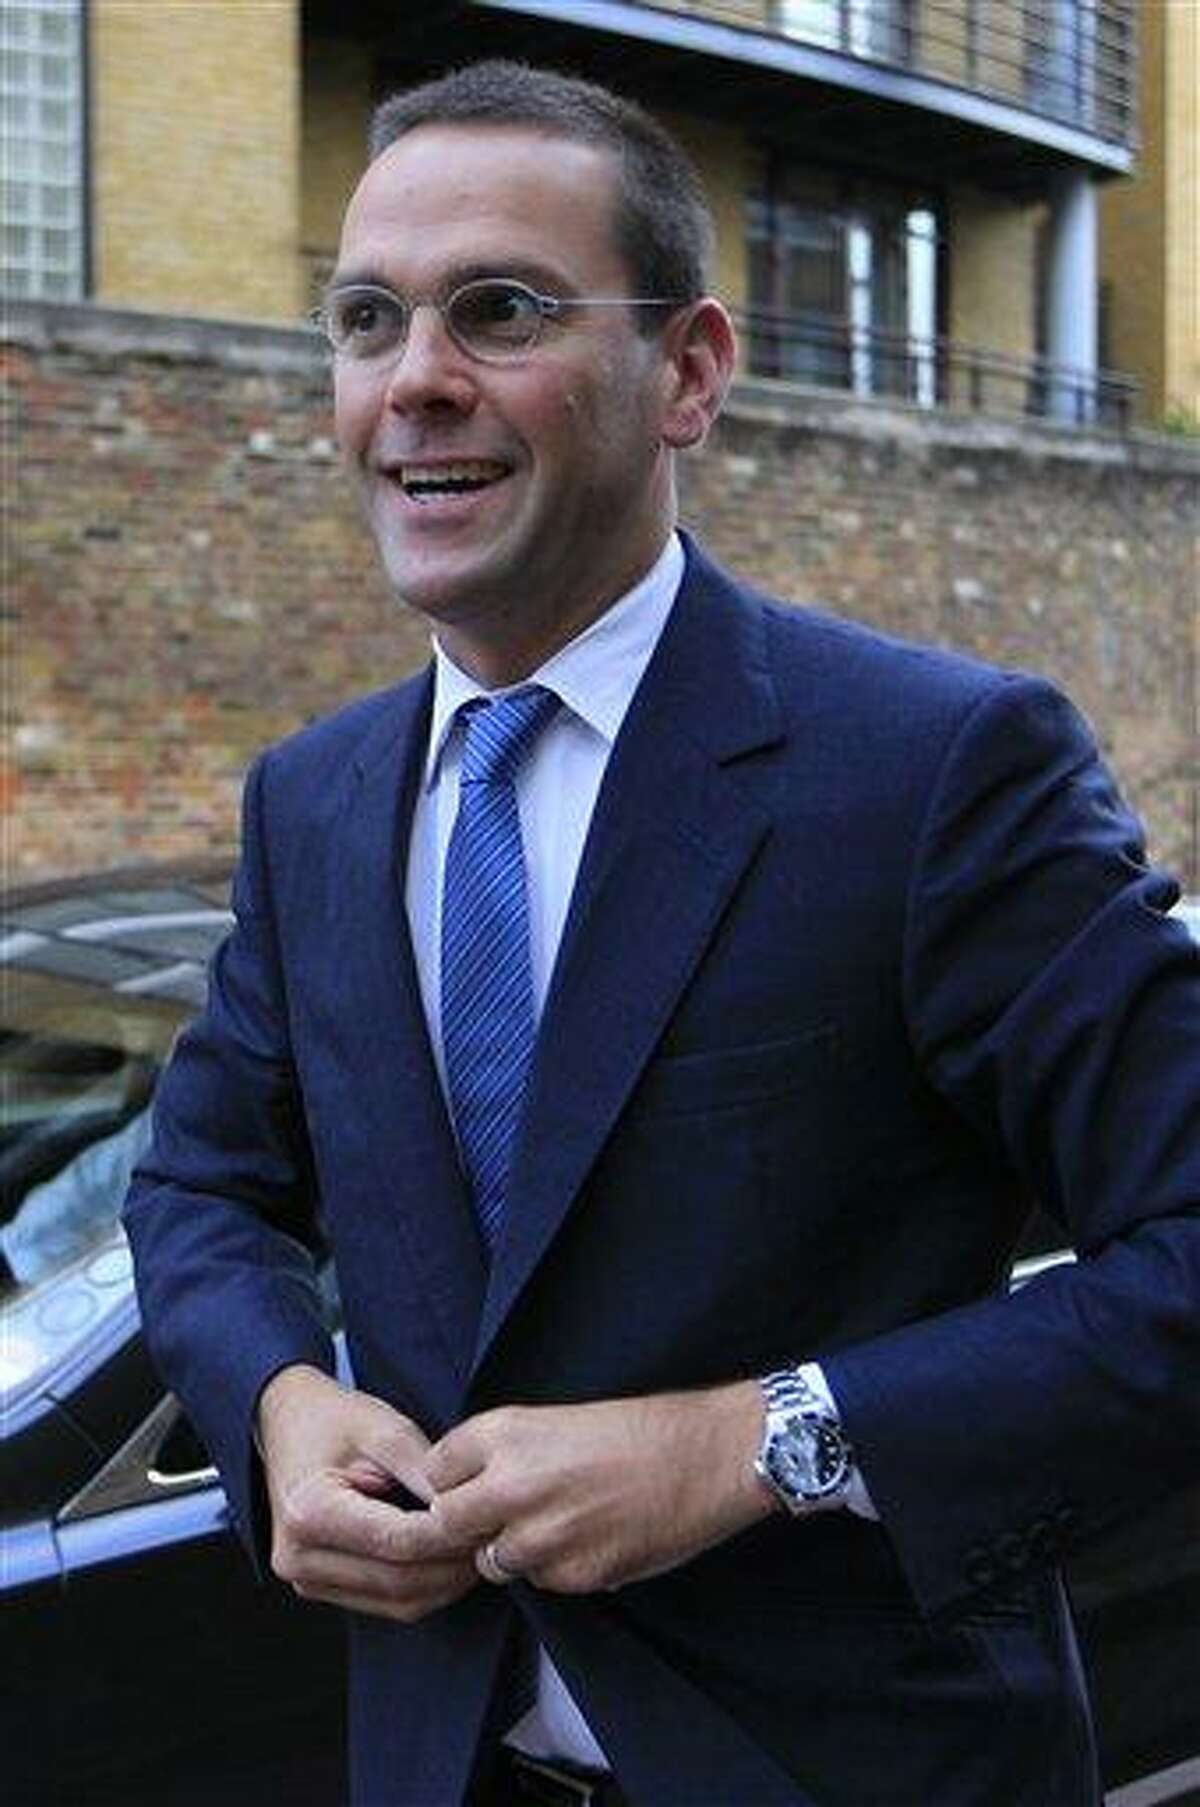 In this July 2011 file photo, chief executive of News Corporation Europe and Asia, James Murdoch arrives at News International headquarters in London. Murdoch has relinquished his position as executive chairman of News International Wednesday, its UK publishing unit. Associated Press